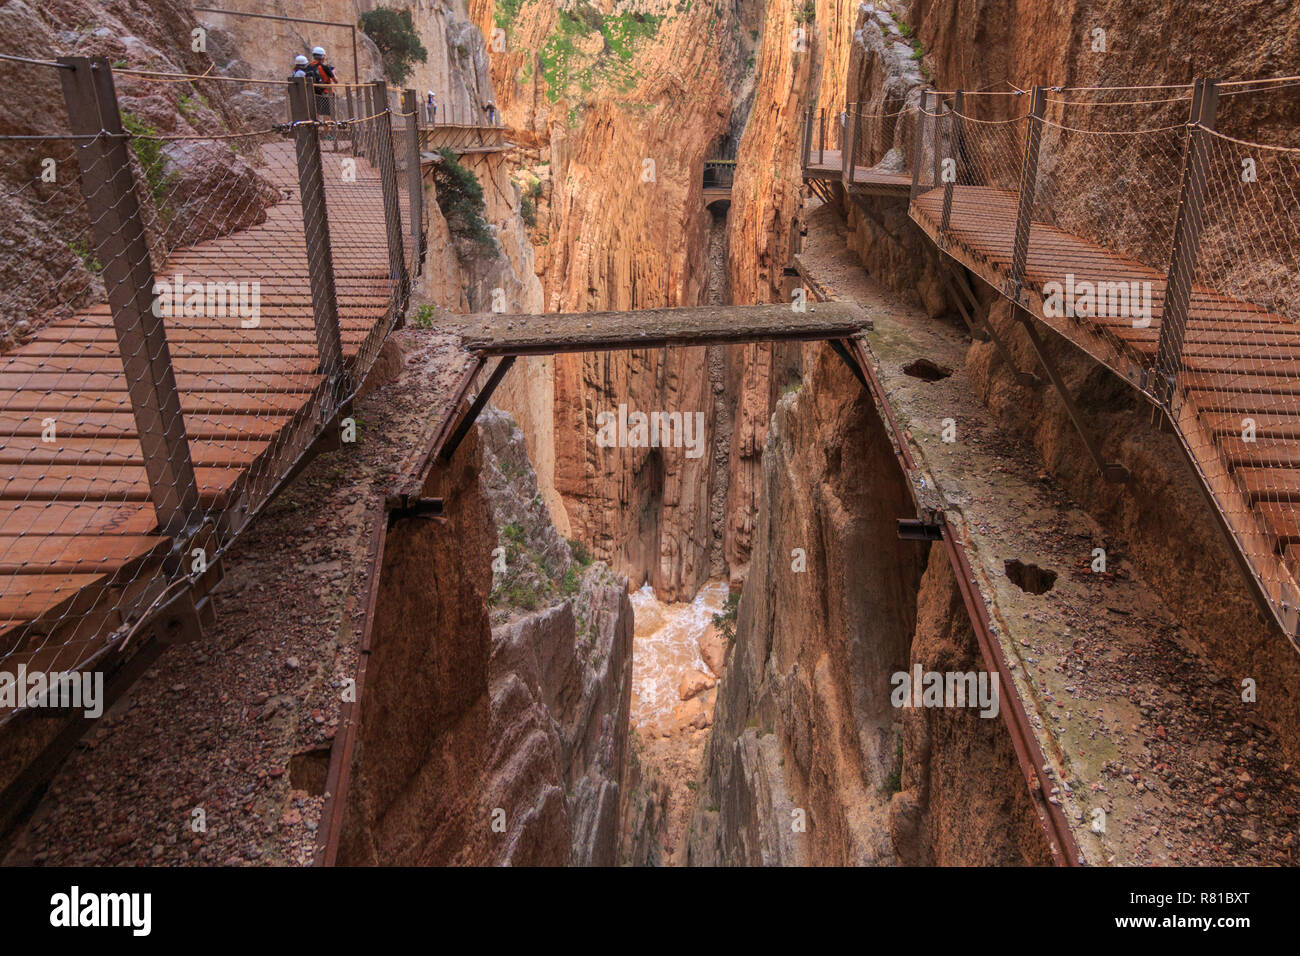 Caminito del rey, old and new way with canyon in background - Stock Image